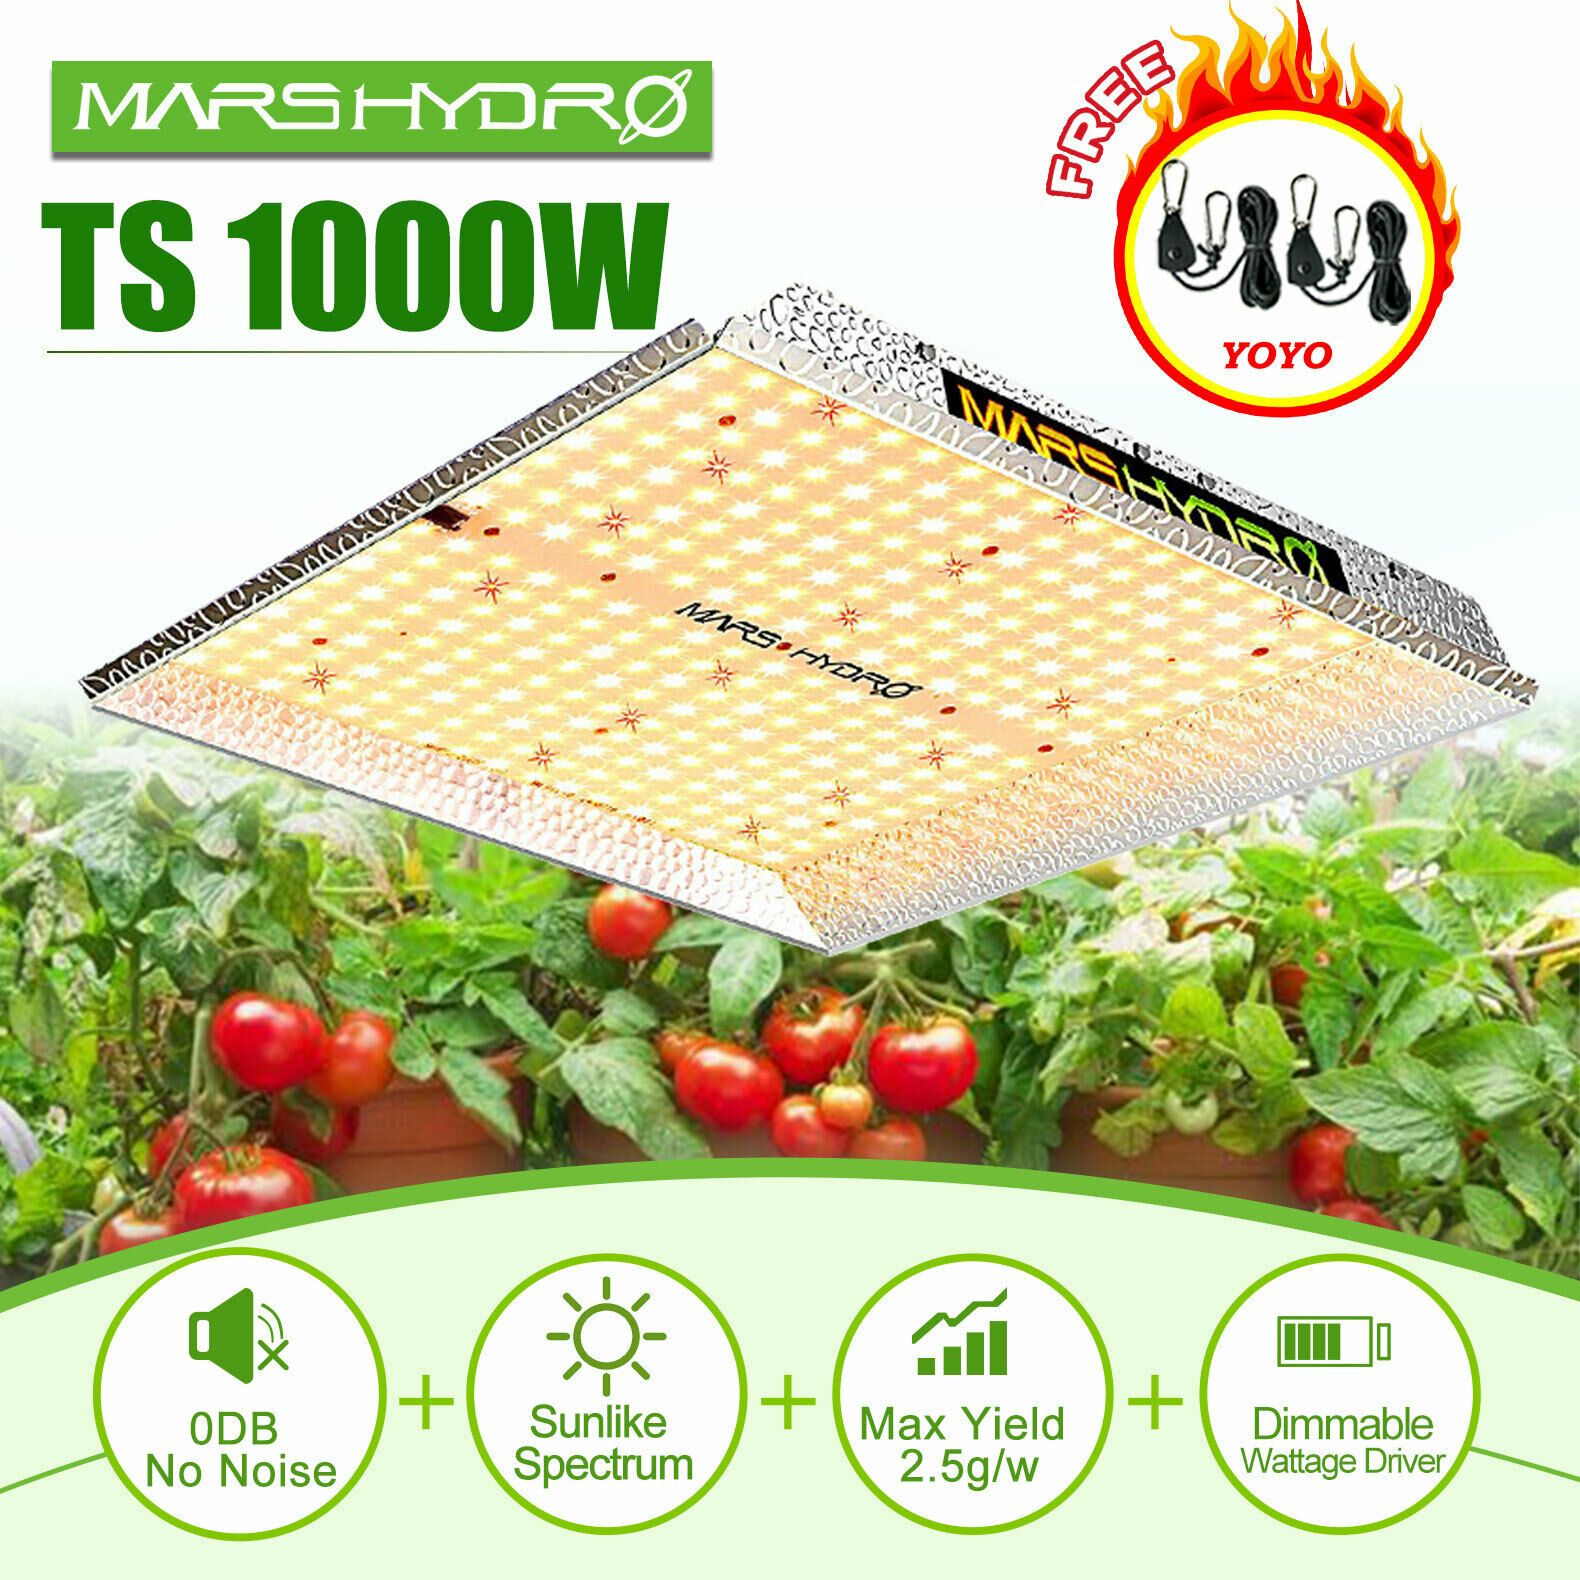 Sale! Mars Hydro TSW 1000W 600W Combo With LED Grow Light Full Spectrum Best For Hydro Plant Veg Flower